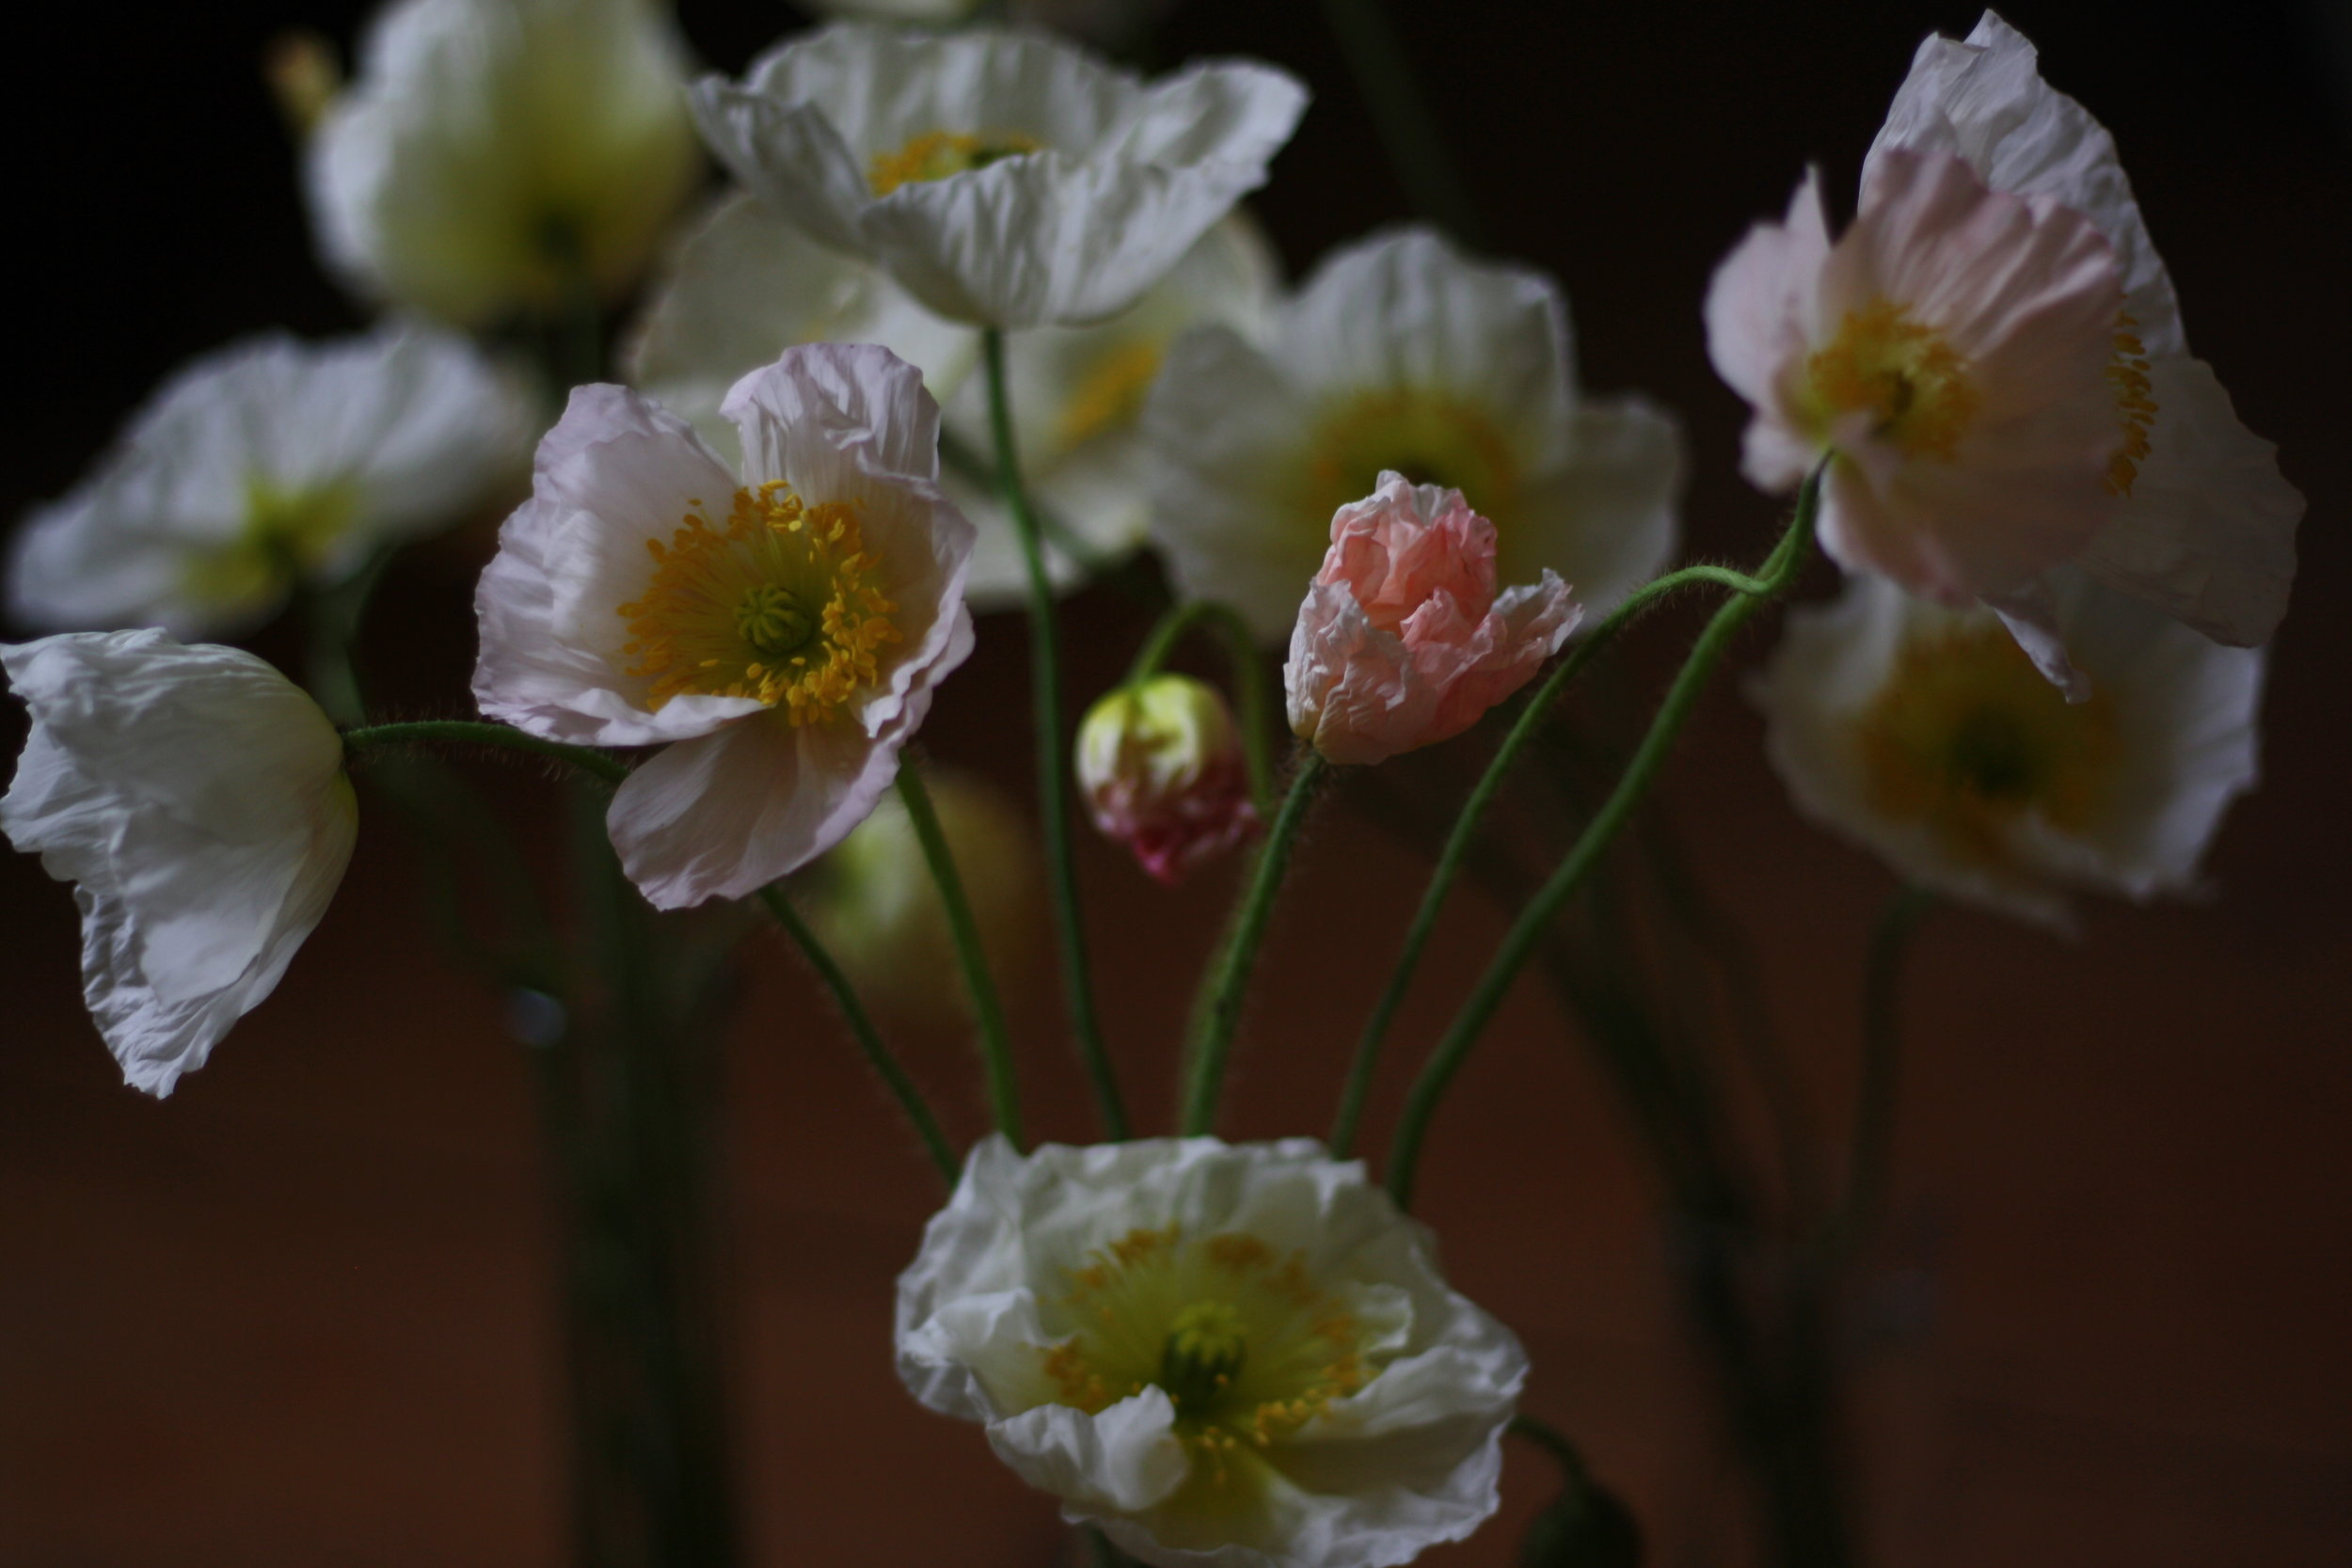 Blush Iceland poppies. A wedding flower favourite grown organically by Hedgerow in Nova Scotia.